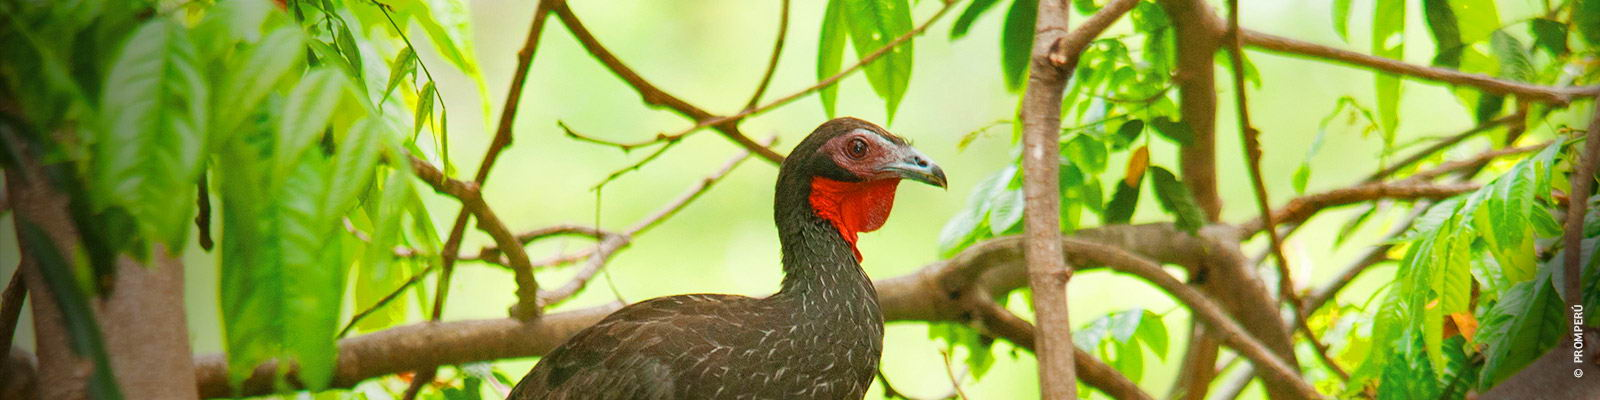 Birdwatching white winged guan